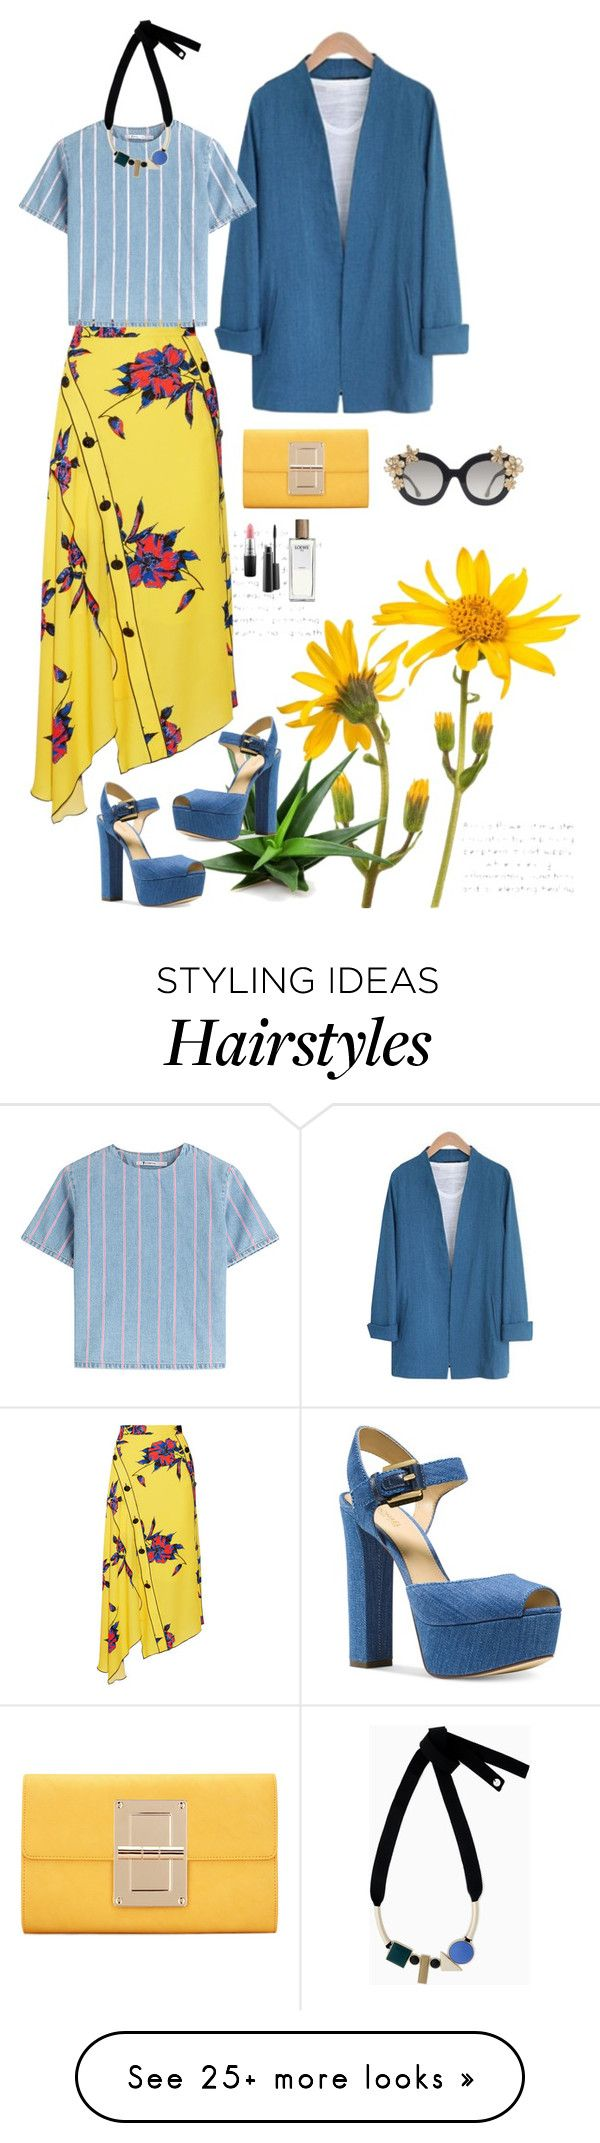 """""""Marc."""" by srtagraham on Polyvore featuring Proenza Schouler, T By Alexander Wang, Michael Kors, Max&Co., Alice + Olivia, MAC Cosmetics and Loewe"""